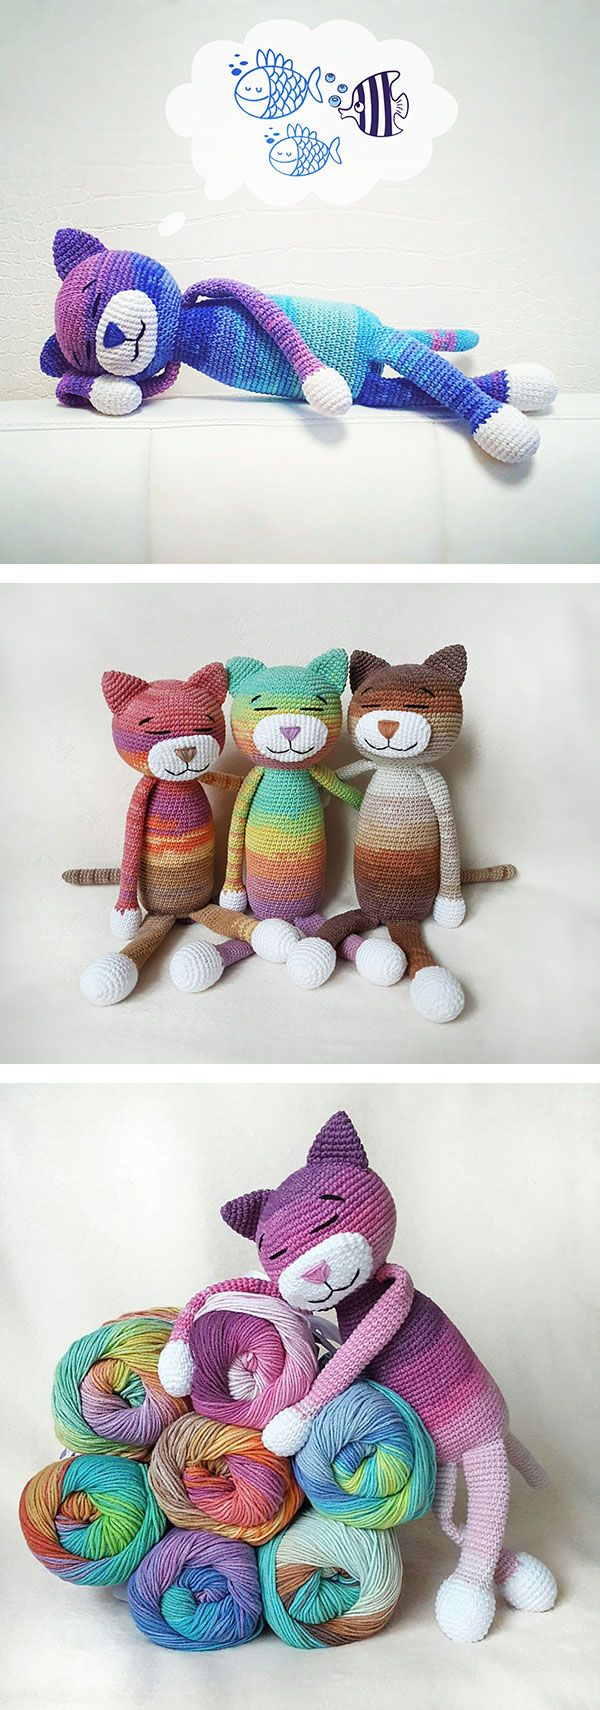 Large ami cats free pattern crochet pinterest free pattern large ami cats free pattern crochet bankloansurffo Image collections